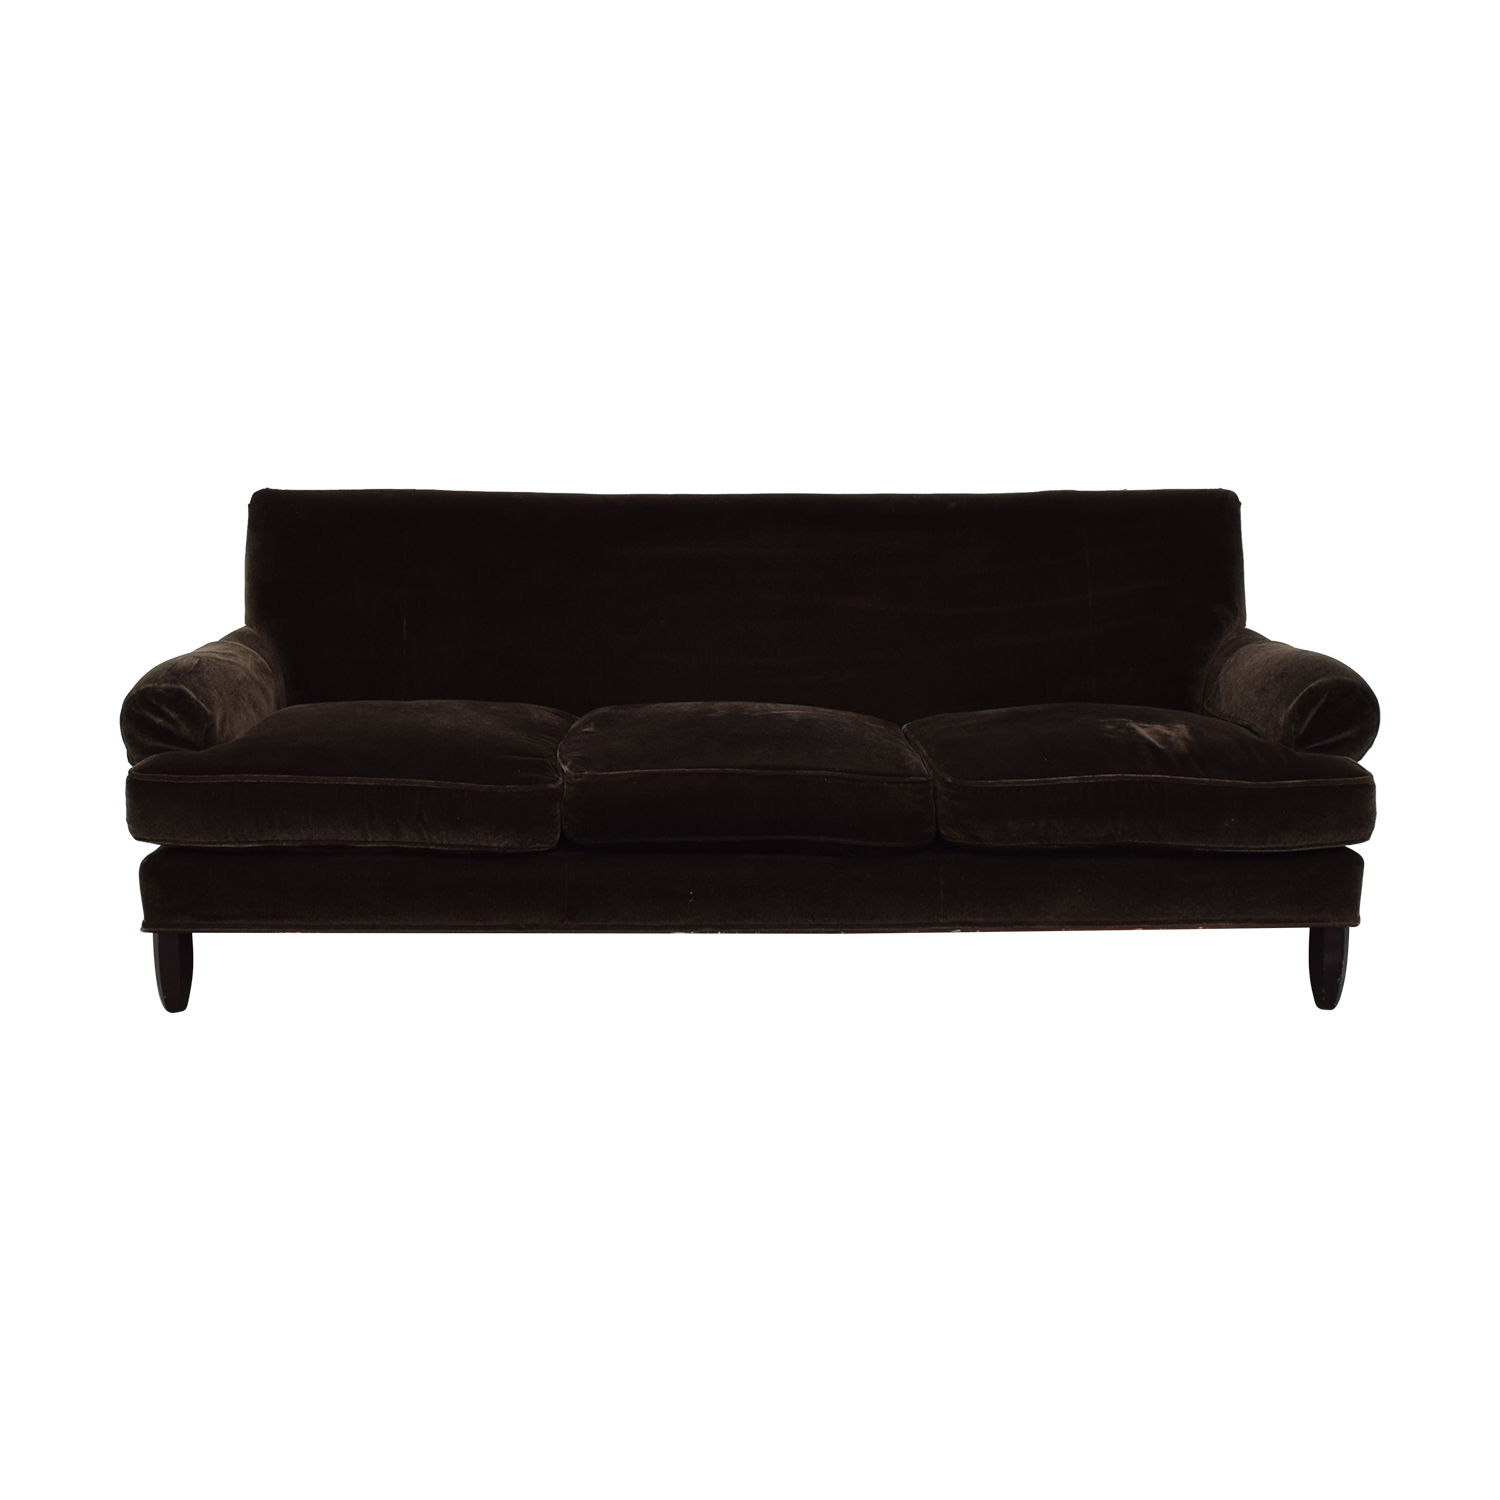 Baker Furniture Baker Furniture Brown Three-Cushion Couch nj